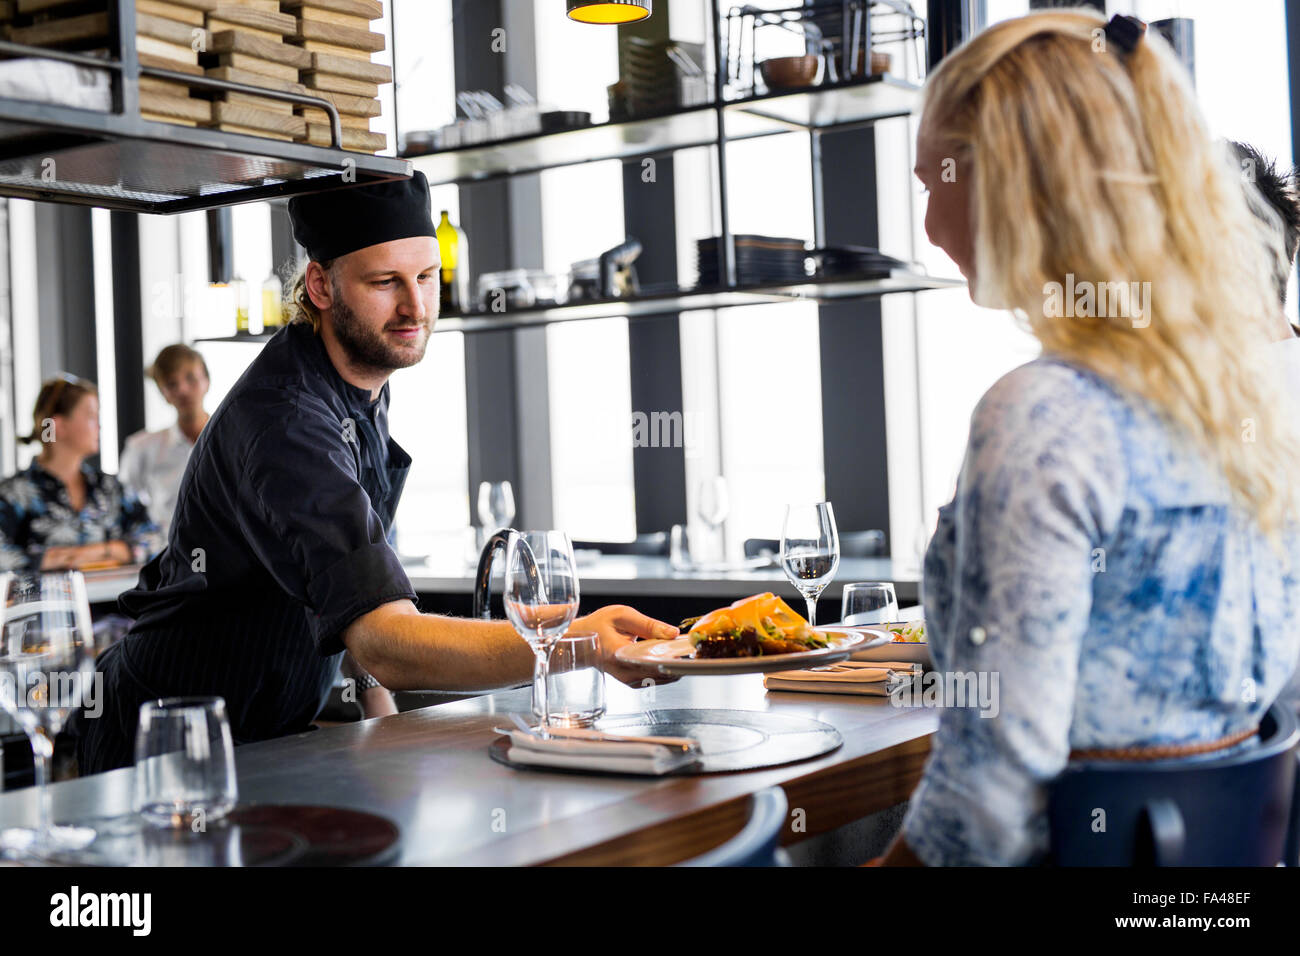 Chef serving dish to woman at Sky bar restaurant - Stock Image